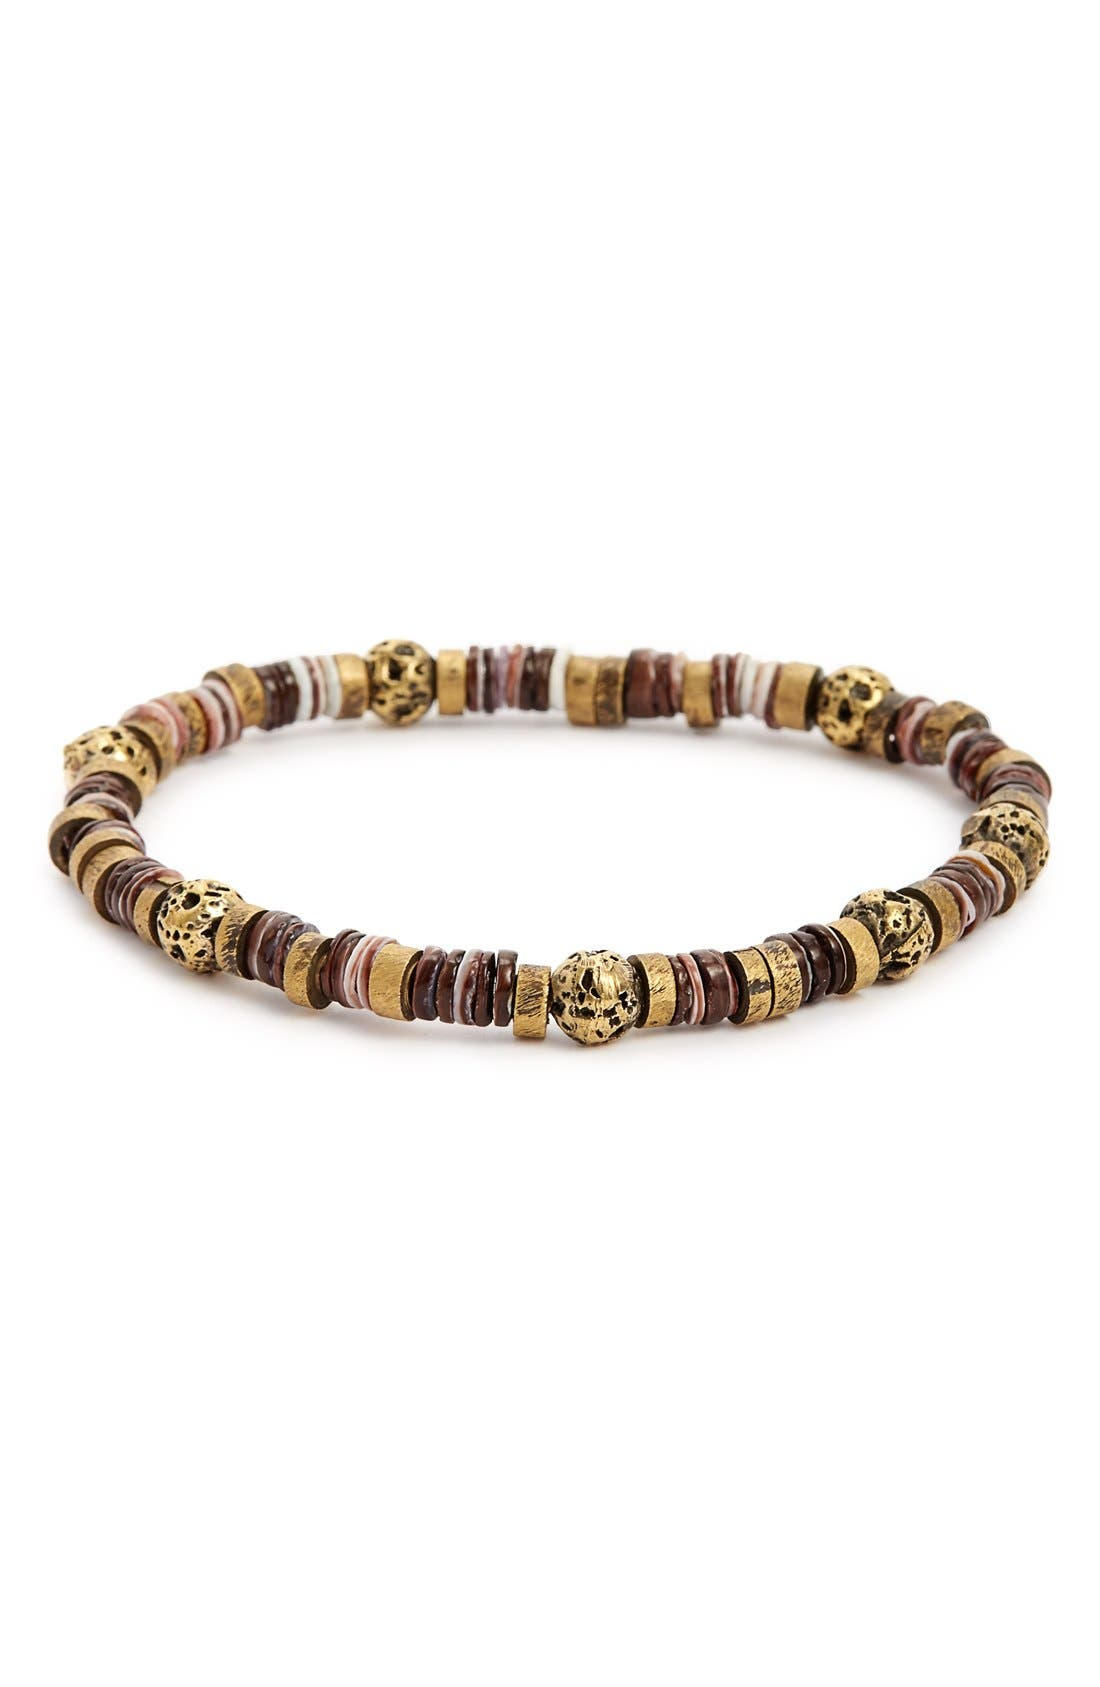 Lava Rock & Brass Bead Bracelet,                         Main,                         color, Brown